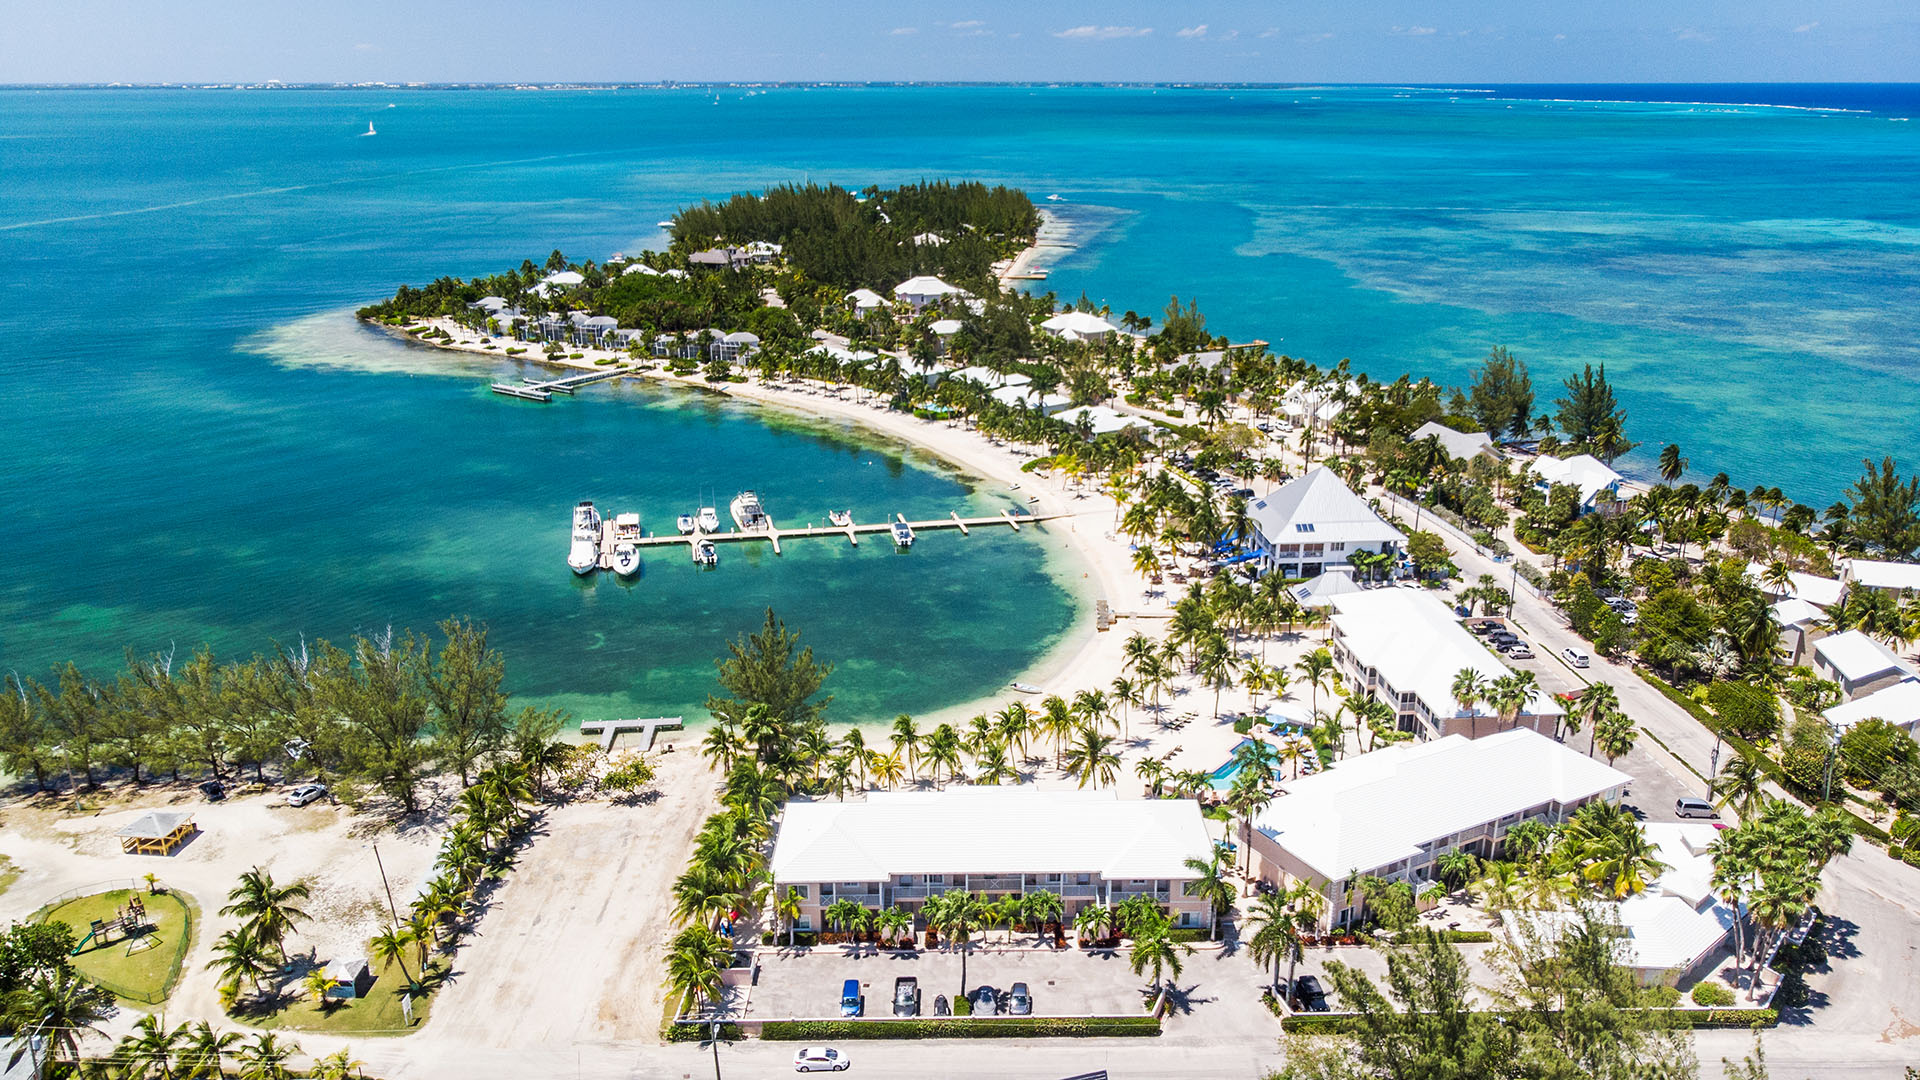 drone photography videography grand cayman